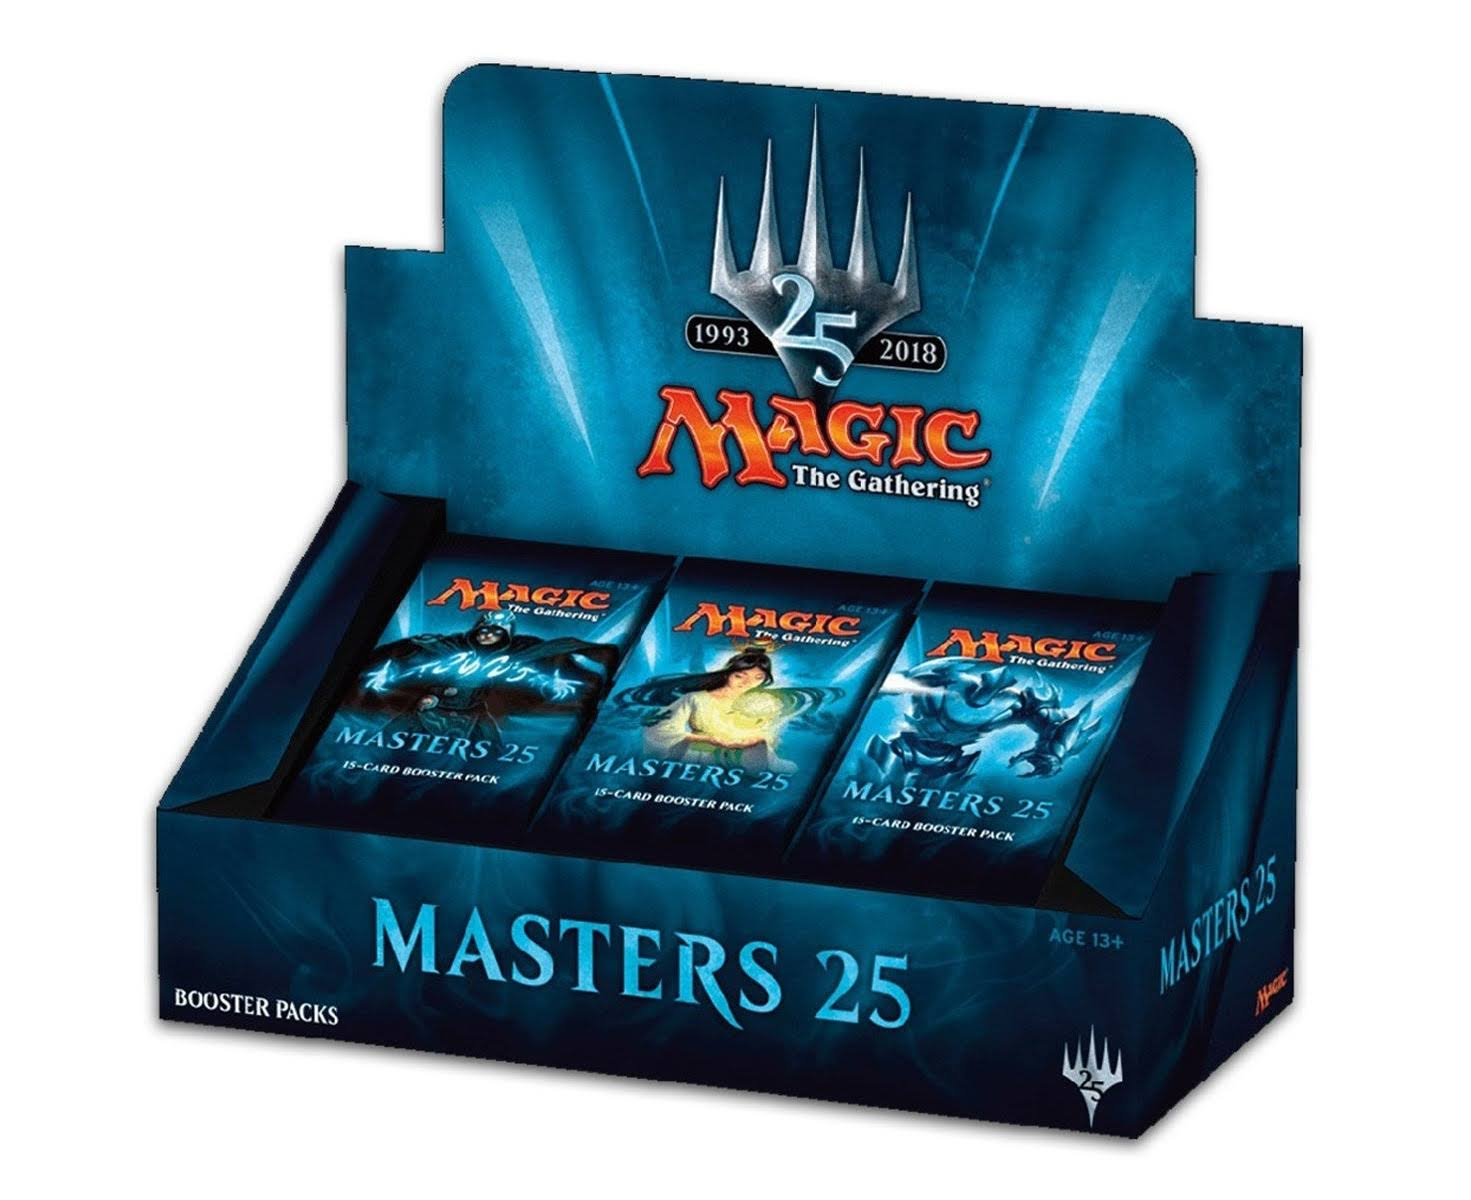 Magic The Gathering Masters 25 Factory Sealed Booster Box - 30pk